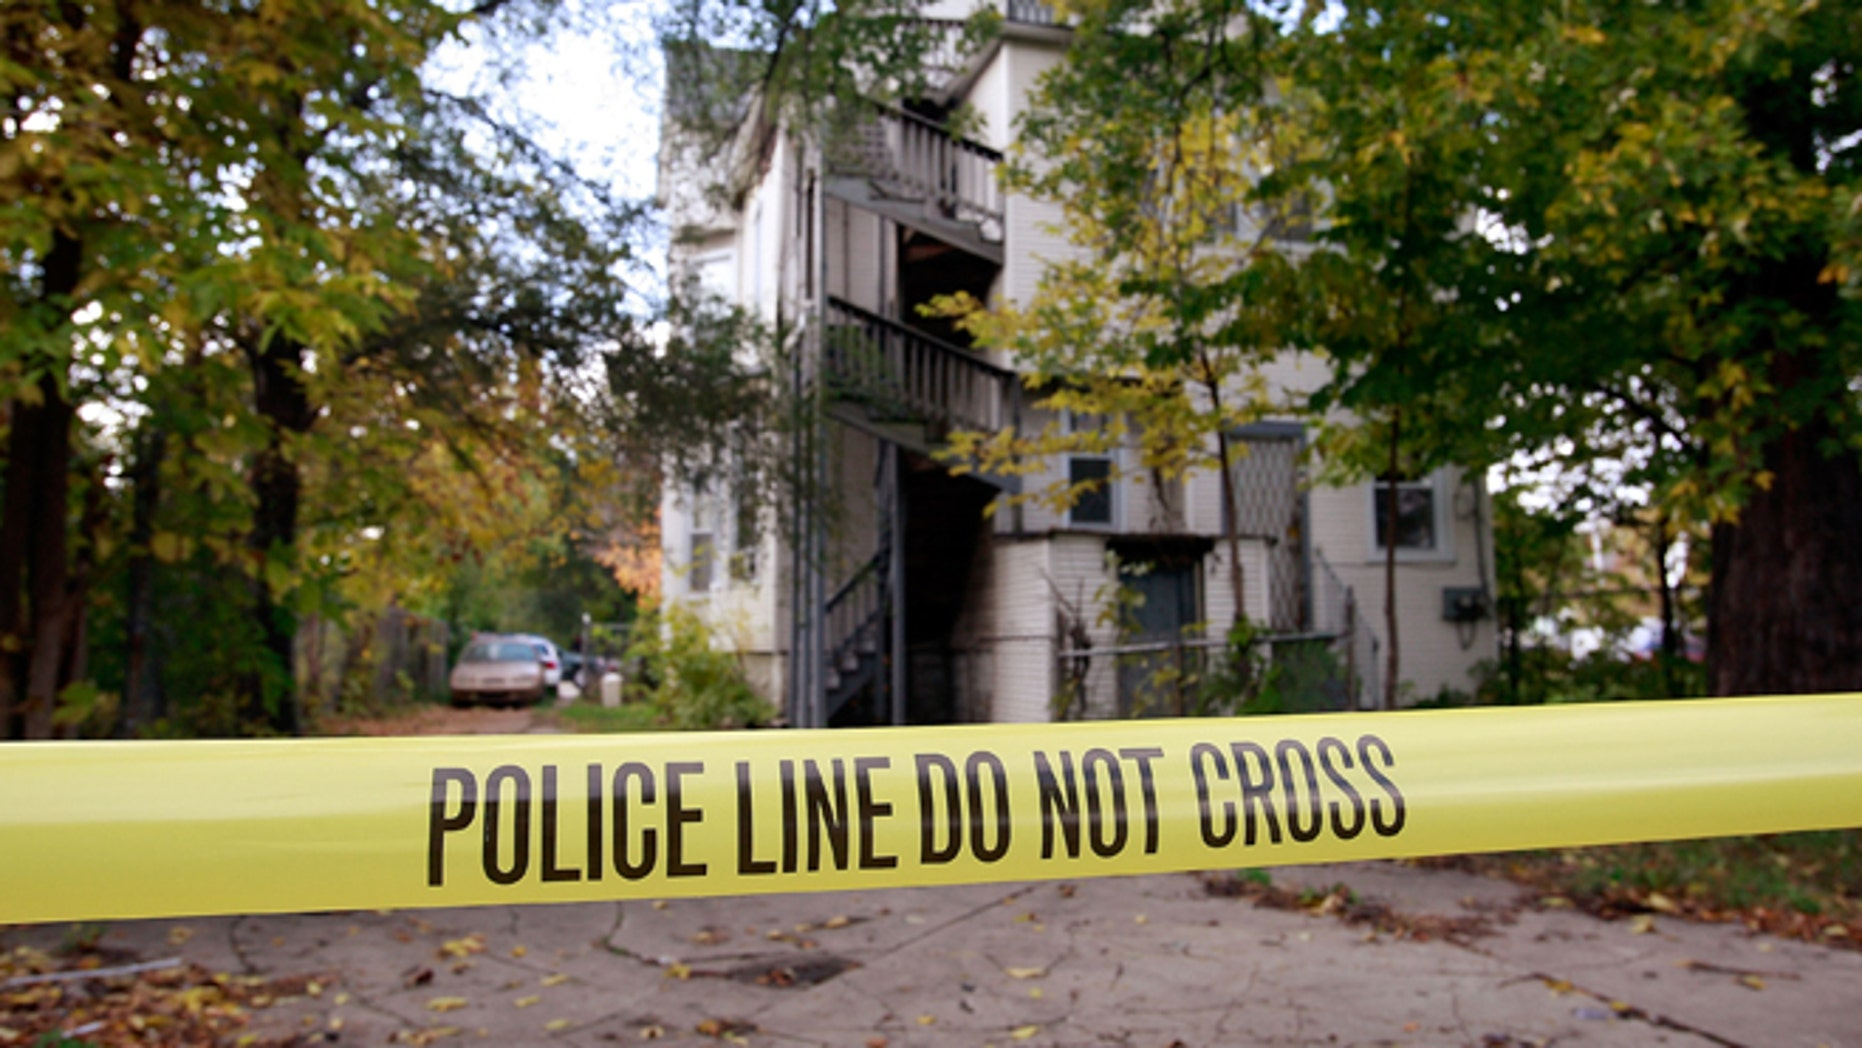 CHICAGO - OCTOBER 25:  Police Tape is streched around the outside of the home of 57-year-old Darnell Hudson Donnerson, the mother of Oscar winner Jennifer Hudson, October 25, 2008 in Chicago, Illinois. Donnerson was found shot to death in her living room yesterday and her son Jason was found shot to death in a bedroom of the home. Police are searching for Donnerson's seven-year-old grandchild who is missing from the home.  (Photo by Scott Olson/Getty Images)